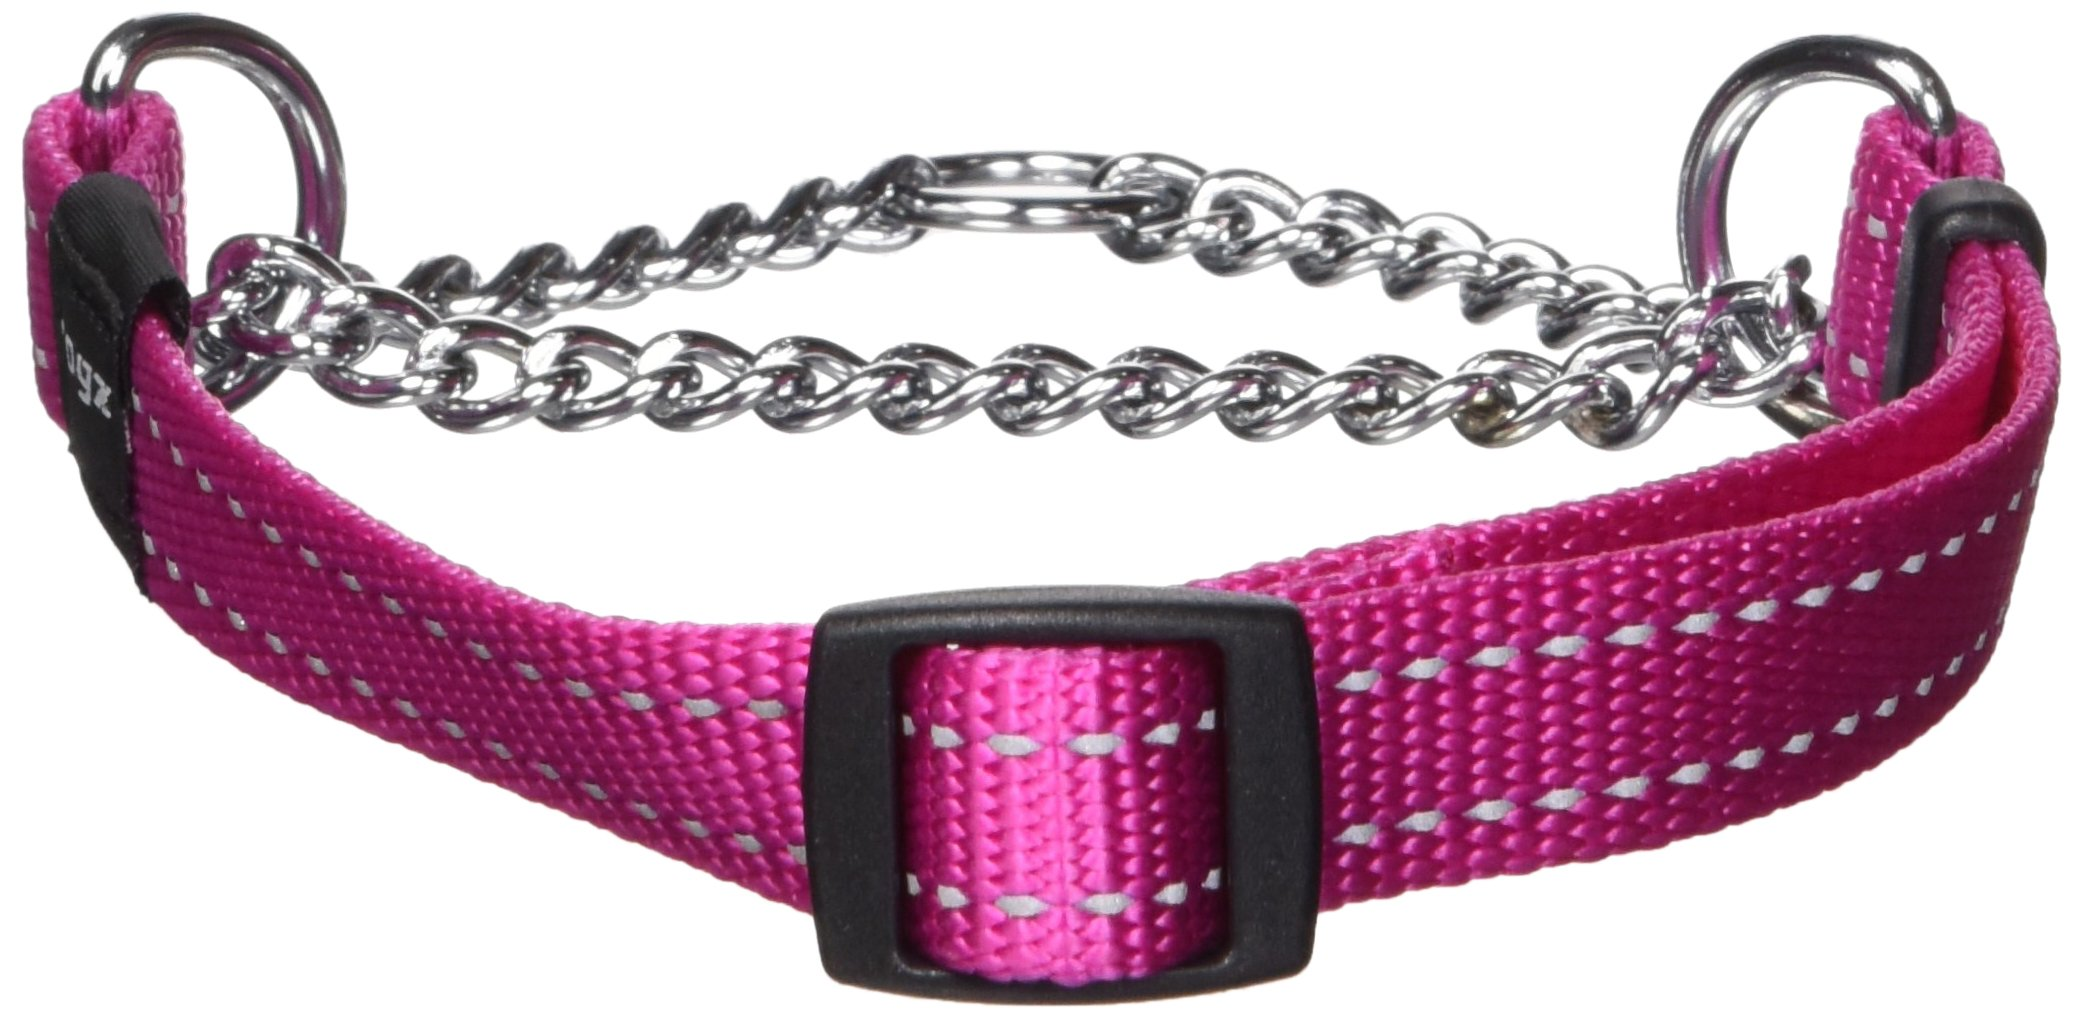 Reflective Nylon Choke Collar; Slip Show Obedience Training Gentle Choker for Medium Dogs, Pink